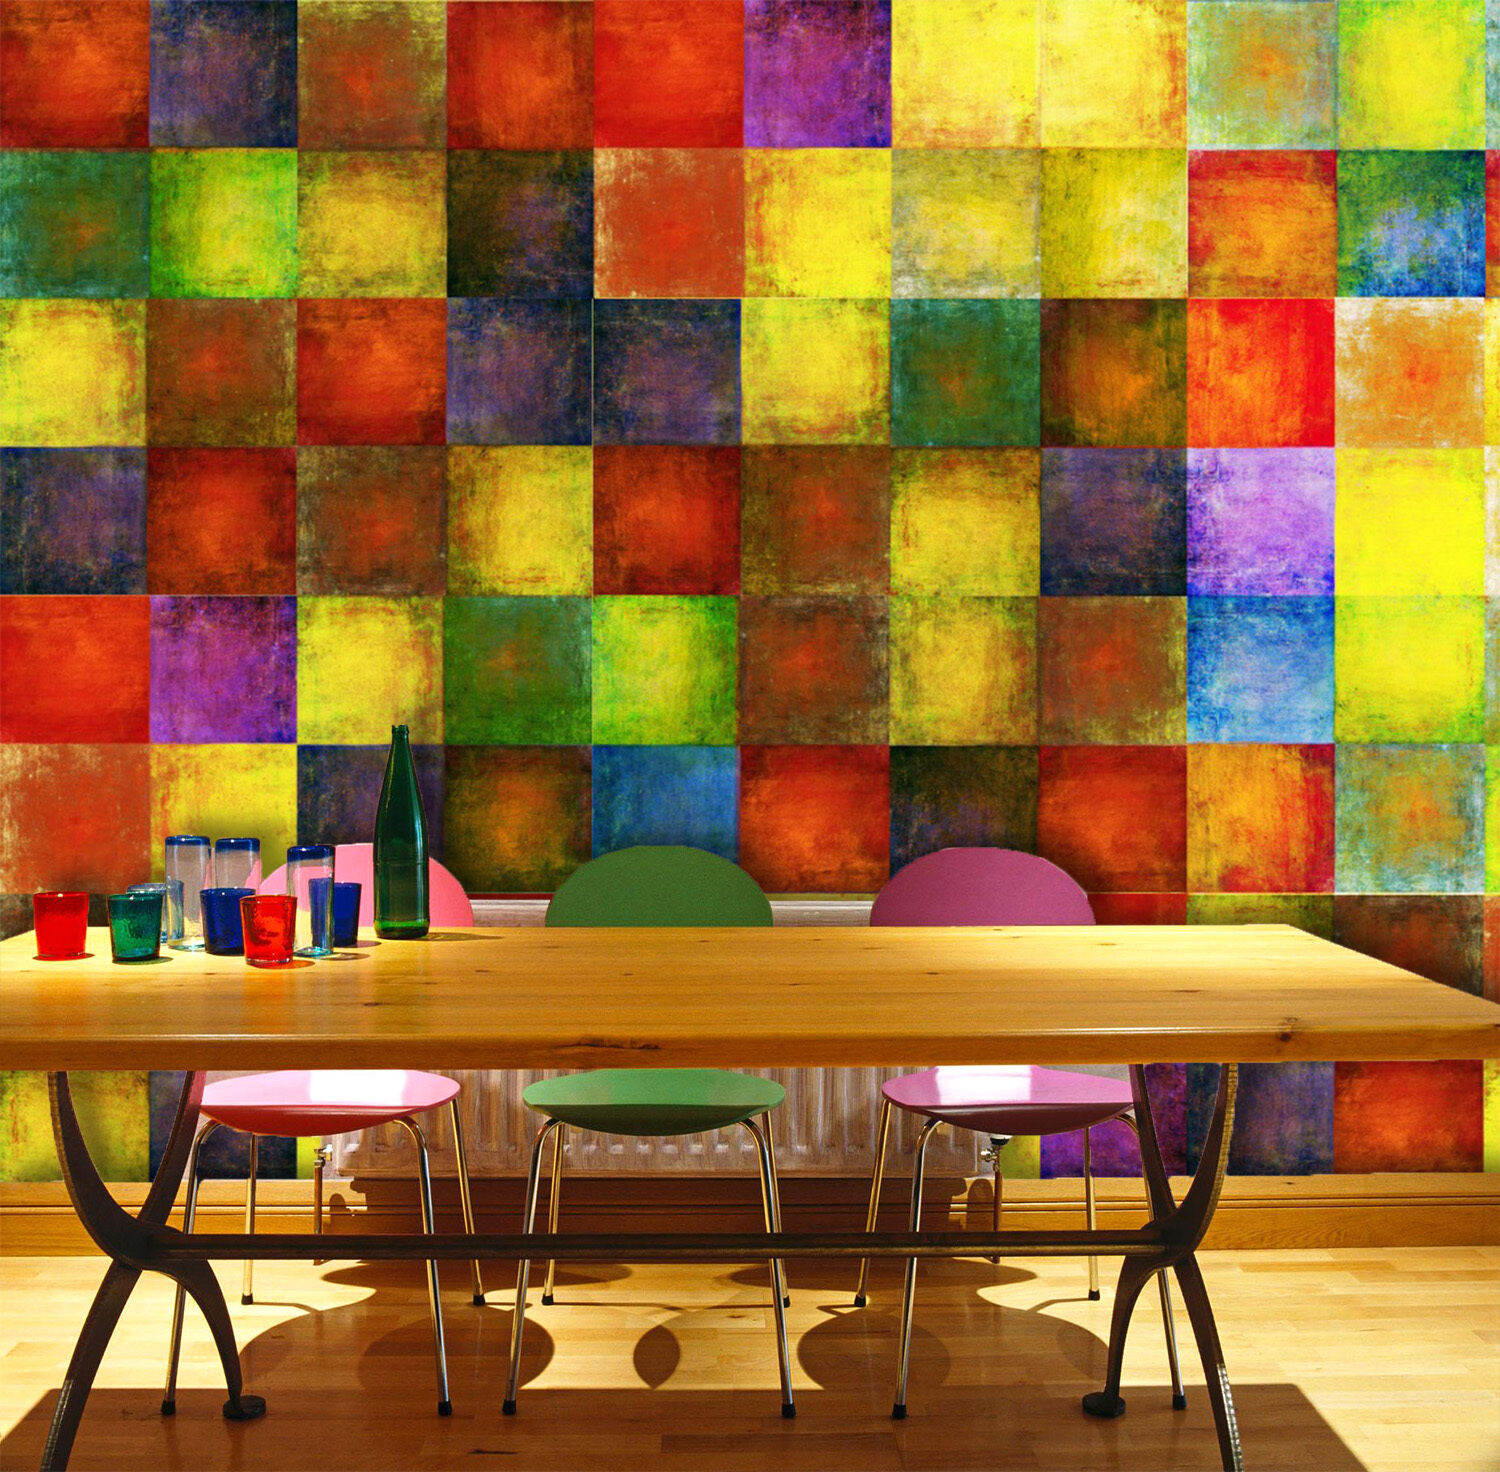 3D Square Lattice 1120 WallPaper Murals Wall Print Decal Wall Deco AJ WALLPAPER